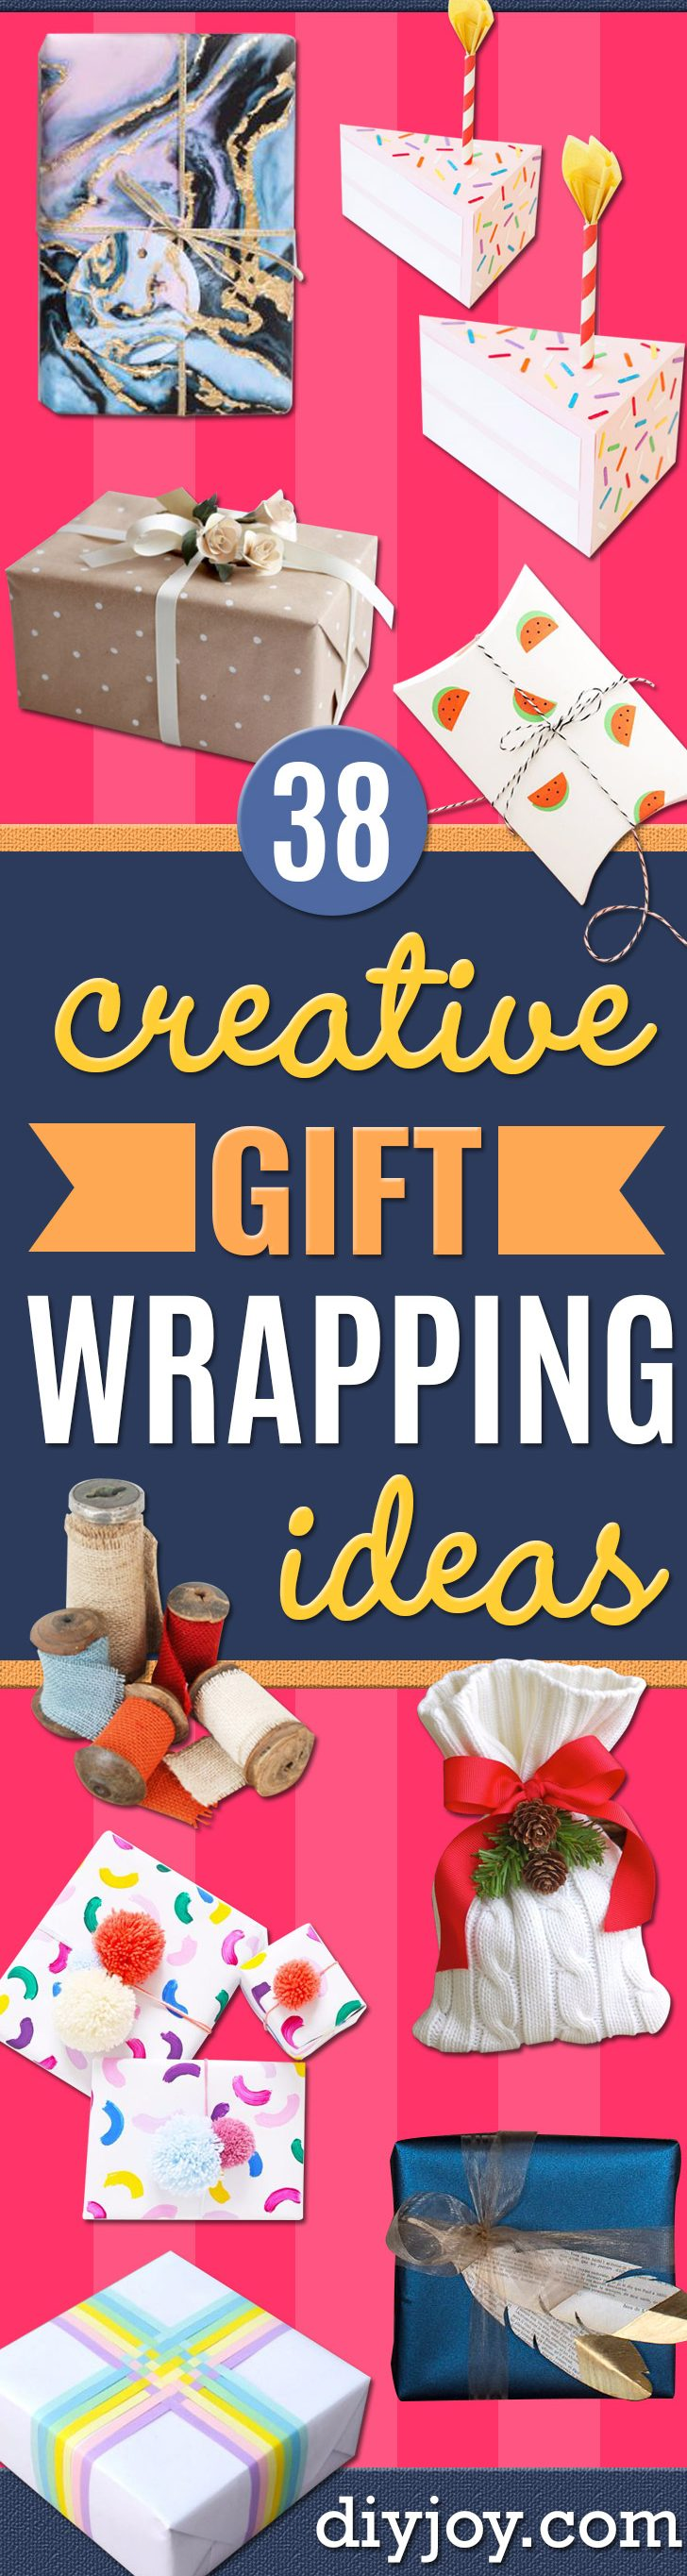 38 Creative Gift Wrapping Ideas You\'ll Want to Try Today